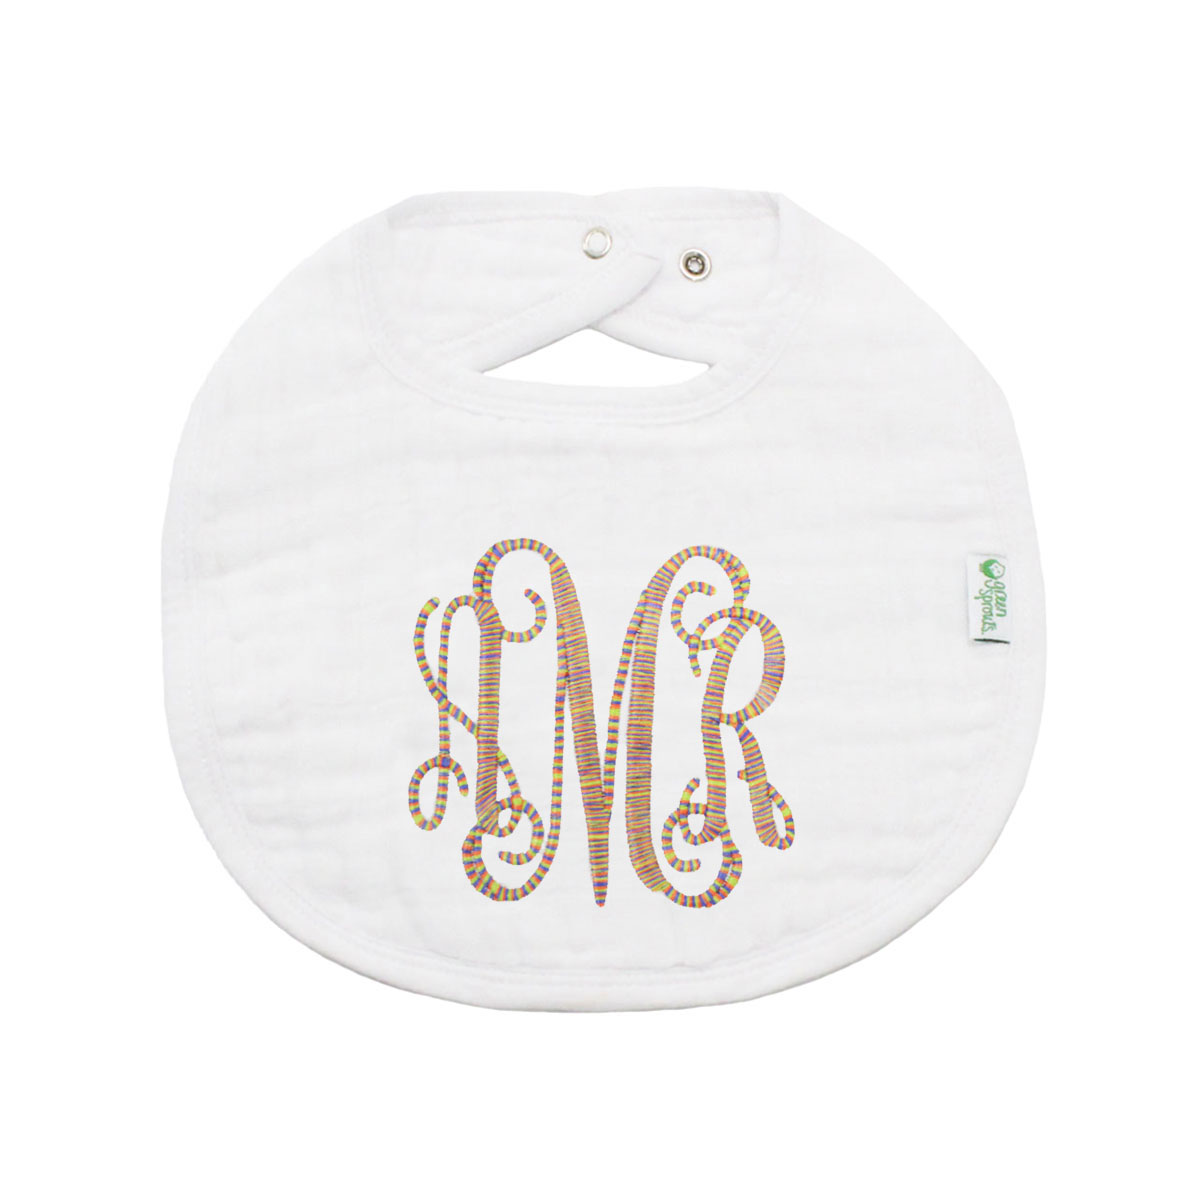 The Tot Organic Cotton White Bib with Personalized Monogram in Classic